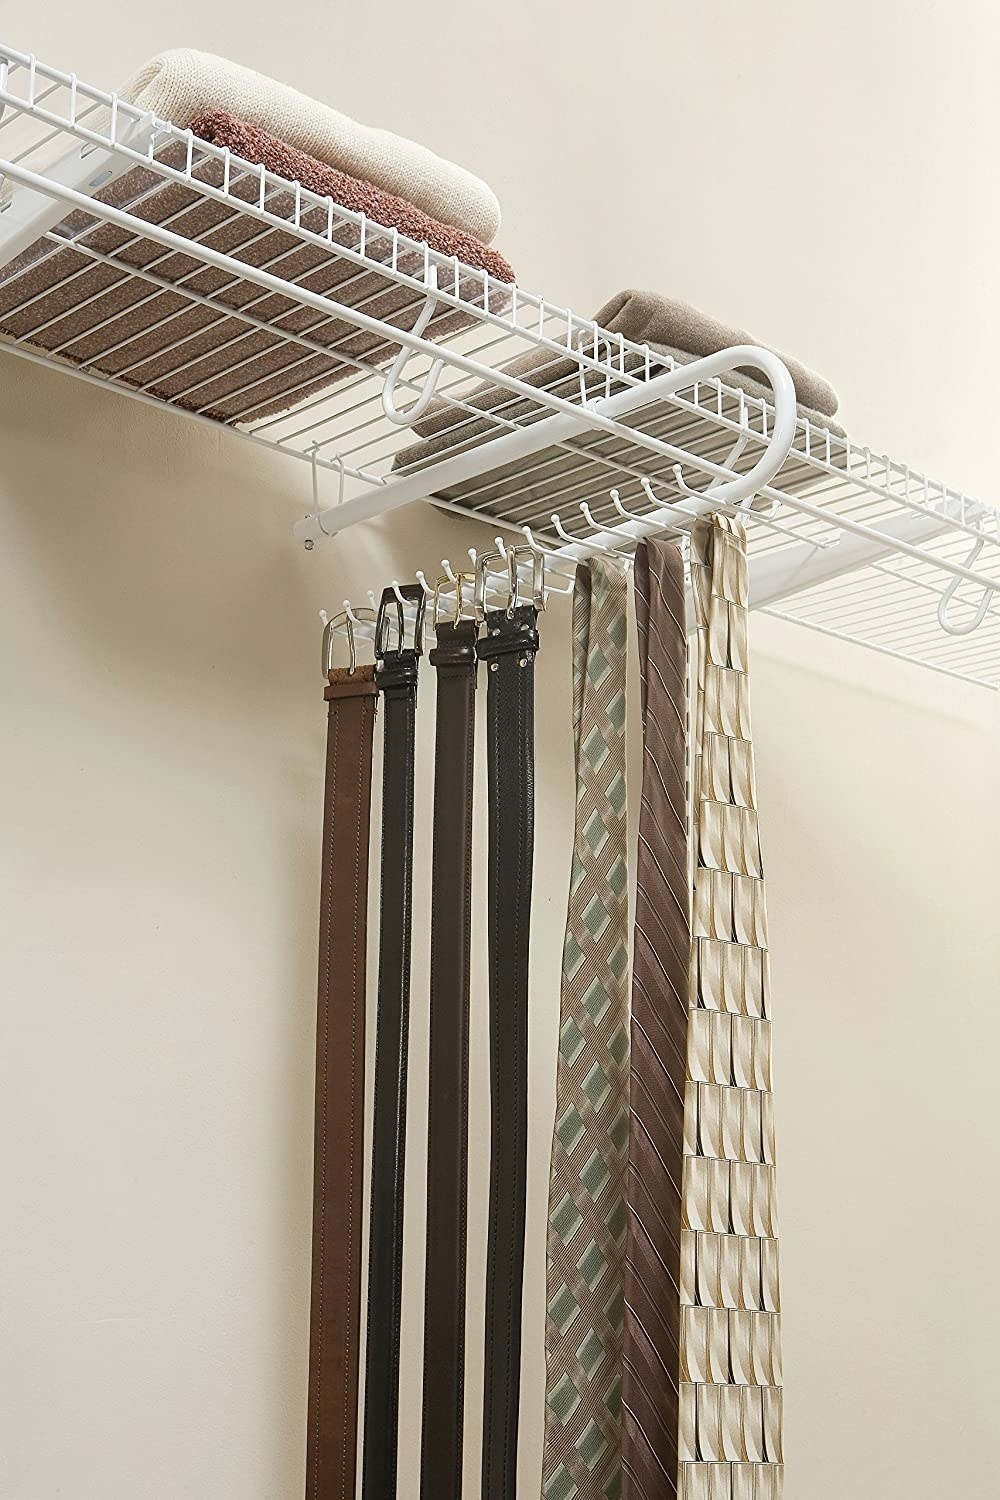 ties and belts hanging from the organizer that's hooked onto a wire shelf